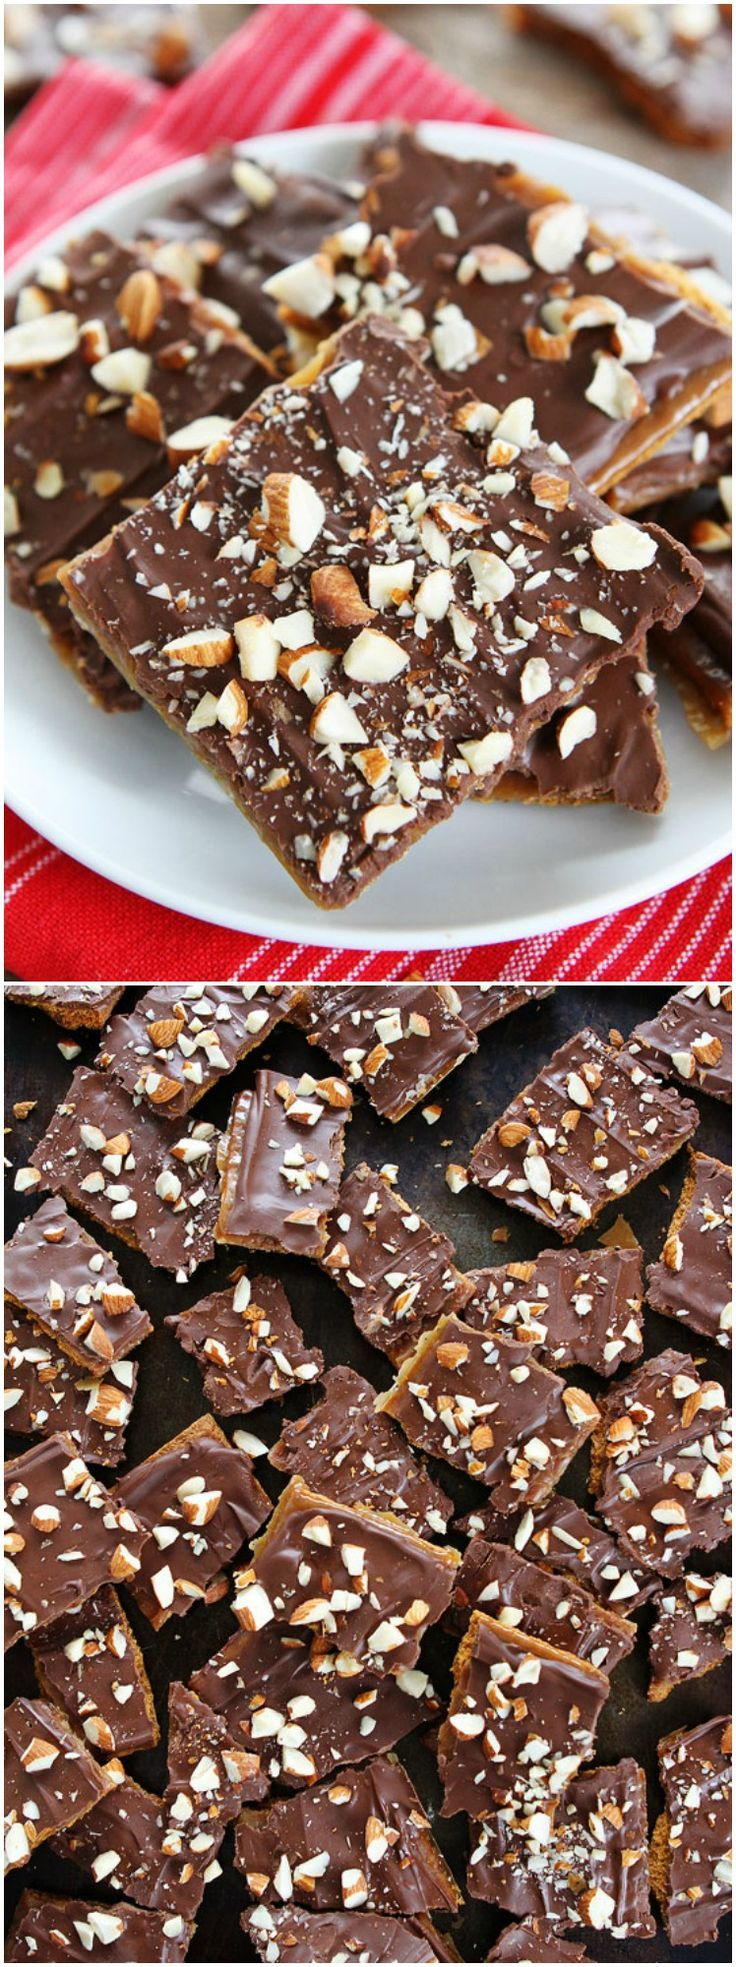 Easy Graham Cracker Toffee Recipe on twopeasandtheirpod.com You only need 5 ingredients to make this delicious toffee! It makes a great holiday gift!